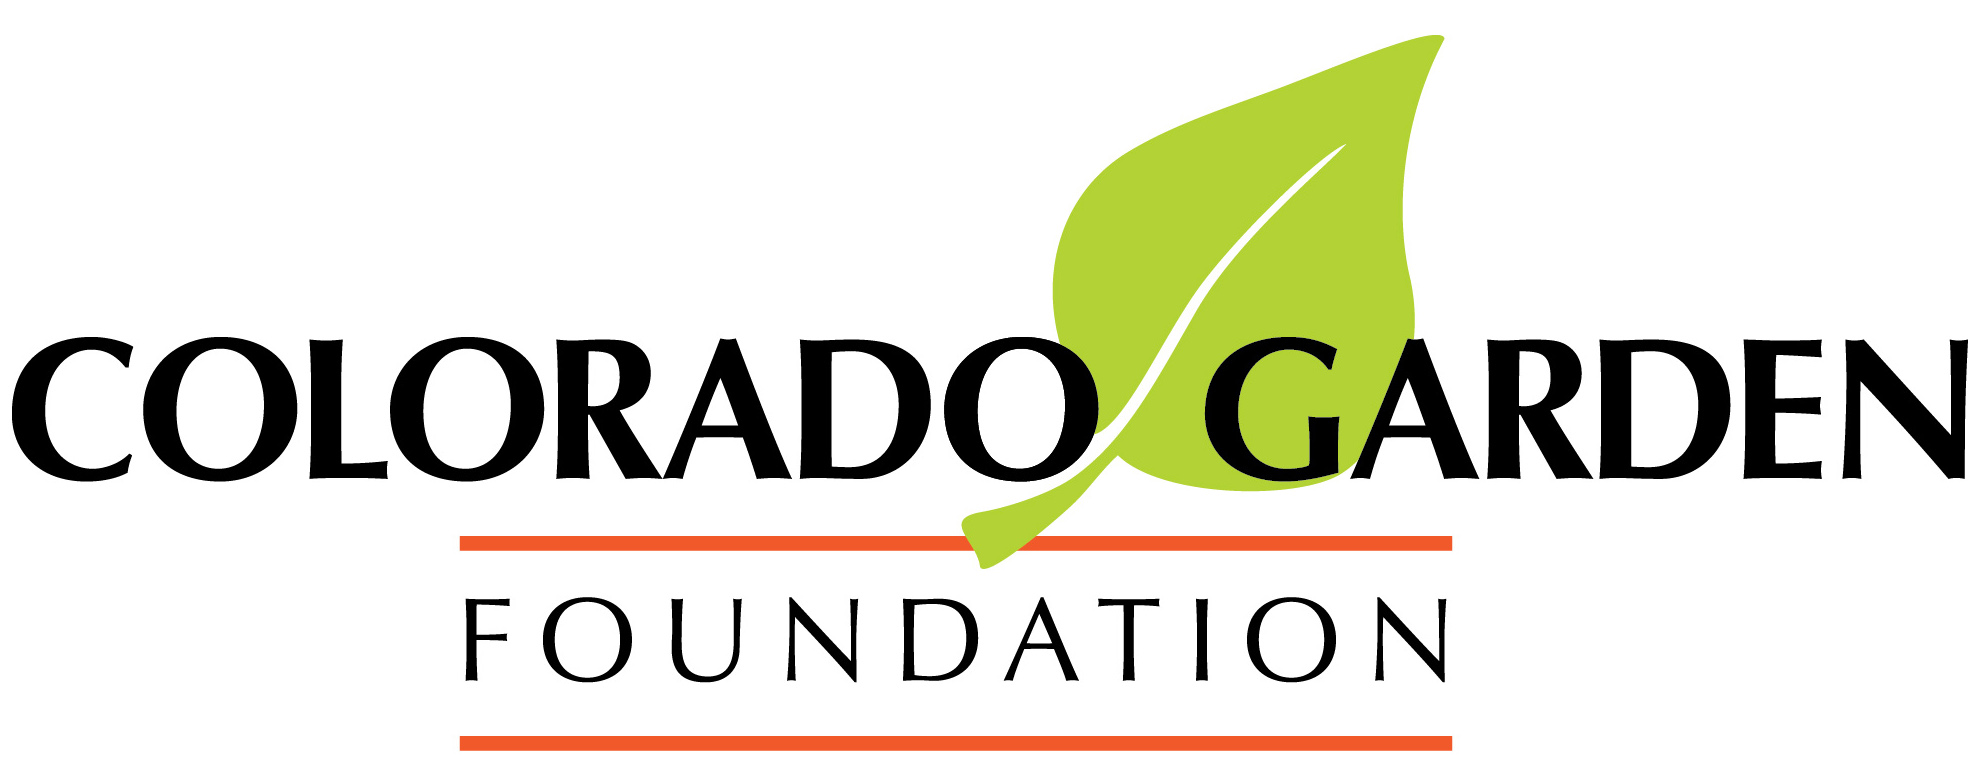 Colorado-Garden-Foundation